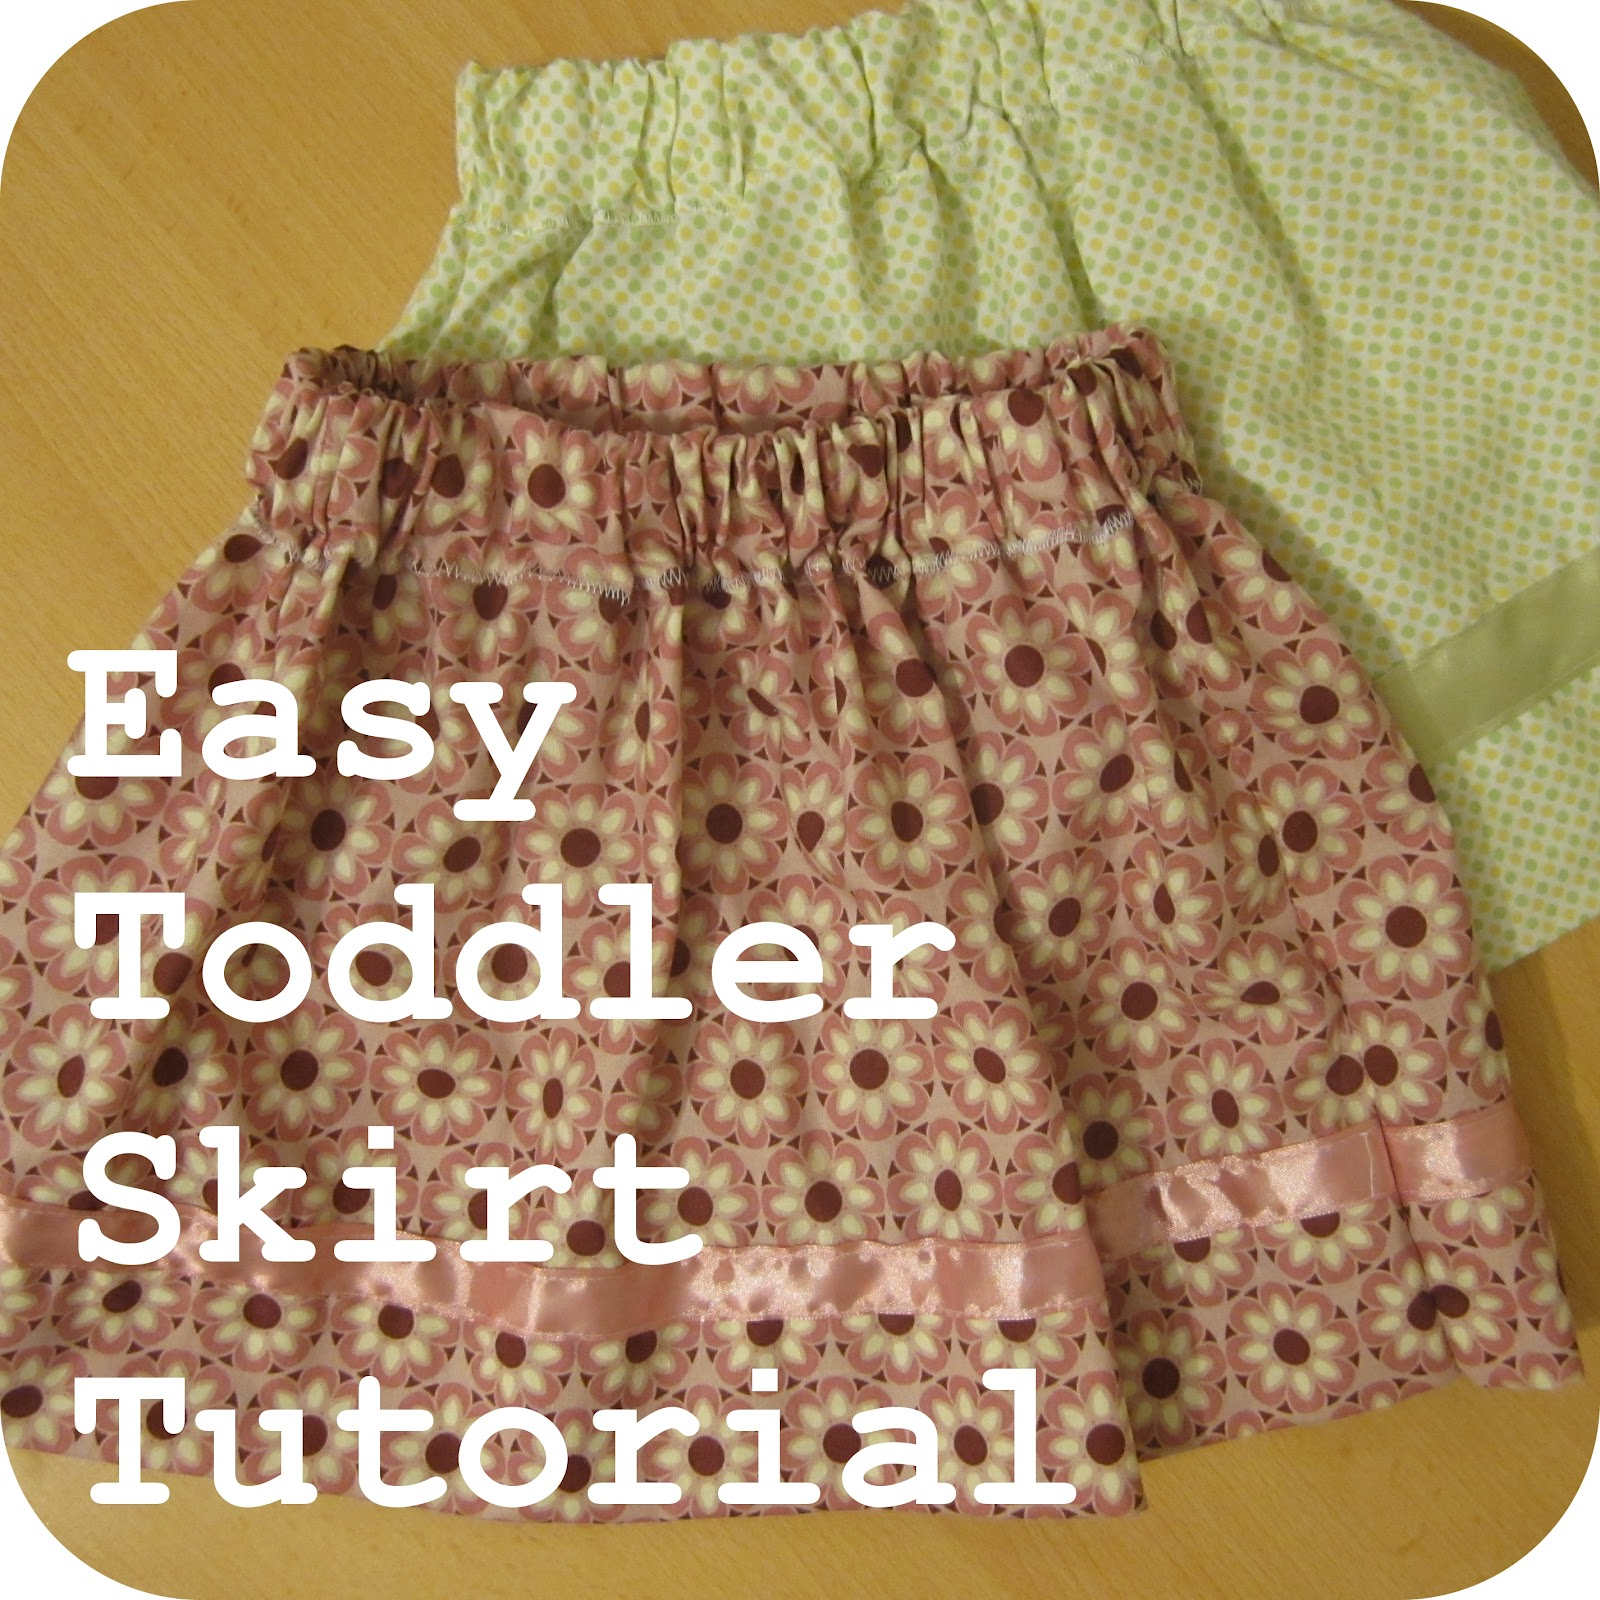 The sewing boutique blog quick tutorial easy toddler skirt thursday 30 august 2012 jeuxipadfo Image collections